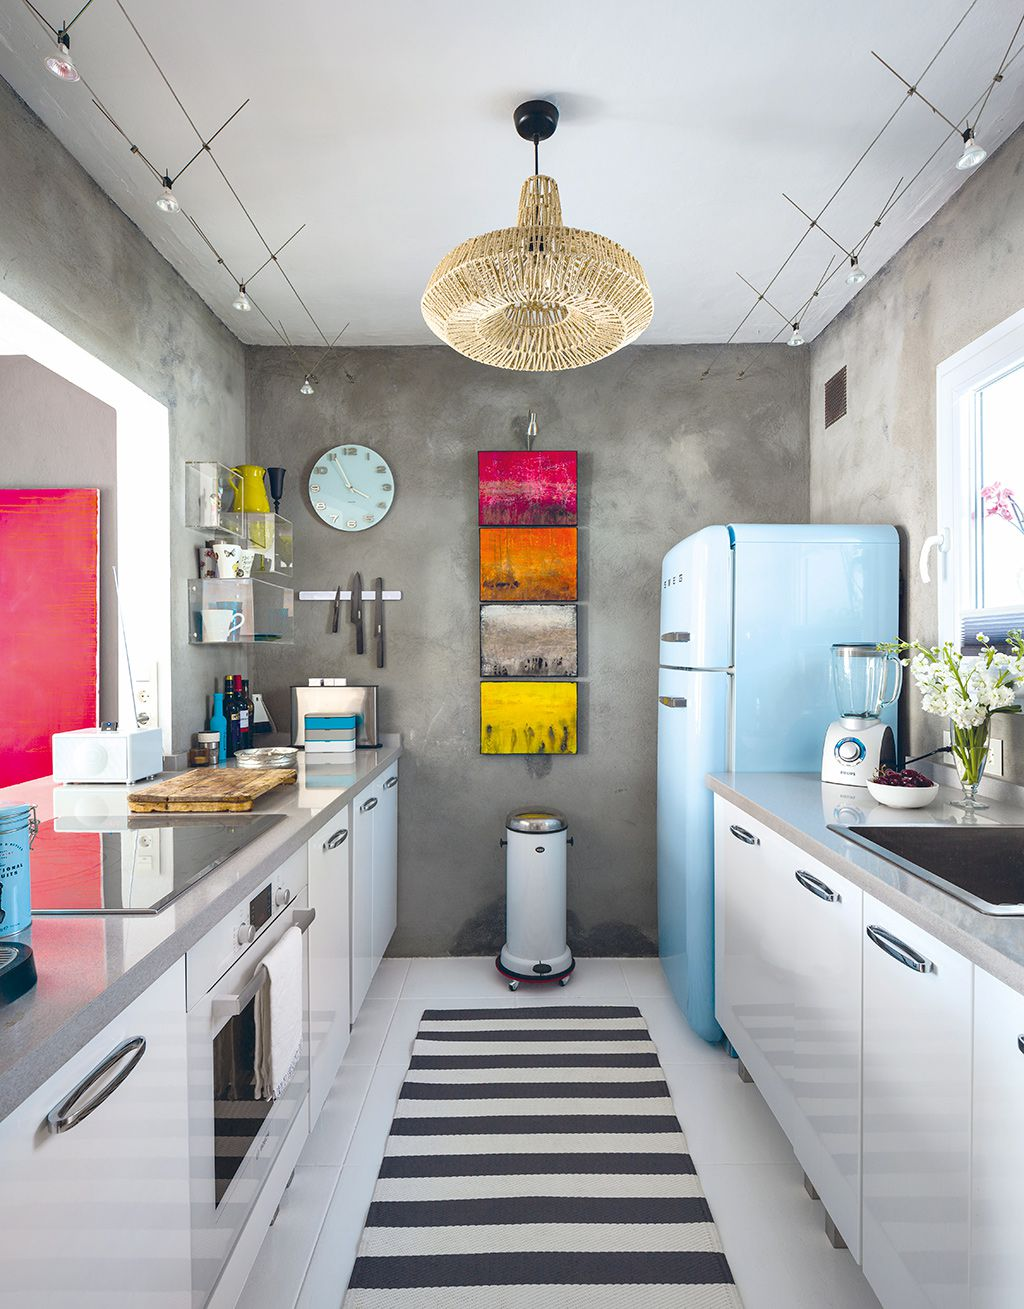 50 Gorgeous Galley Kitchens And Tips You Can Use From Them images 24